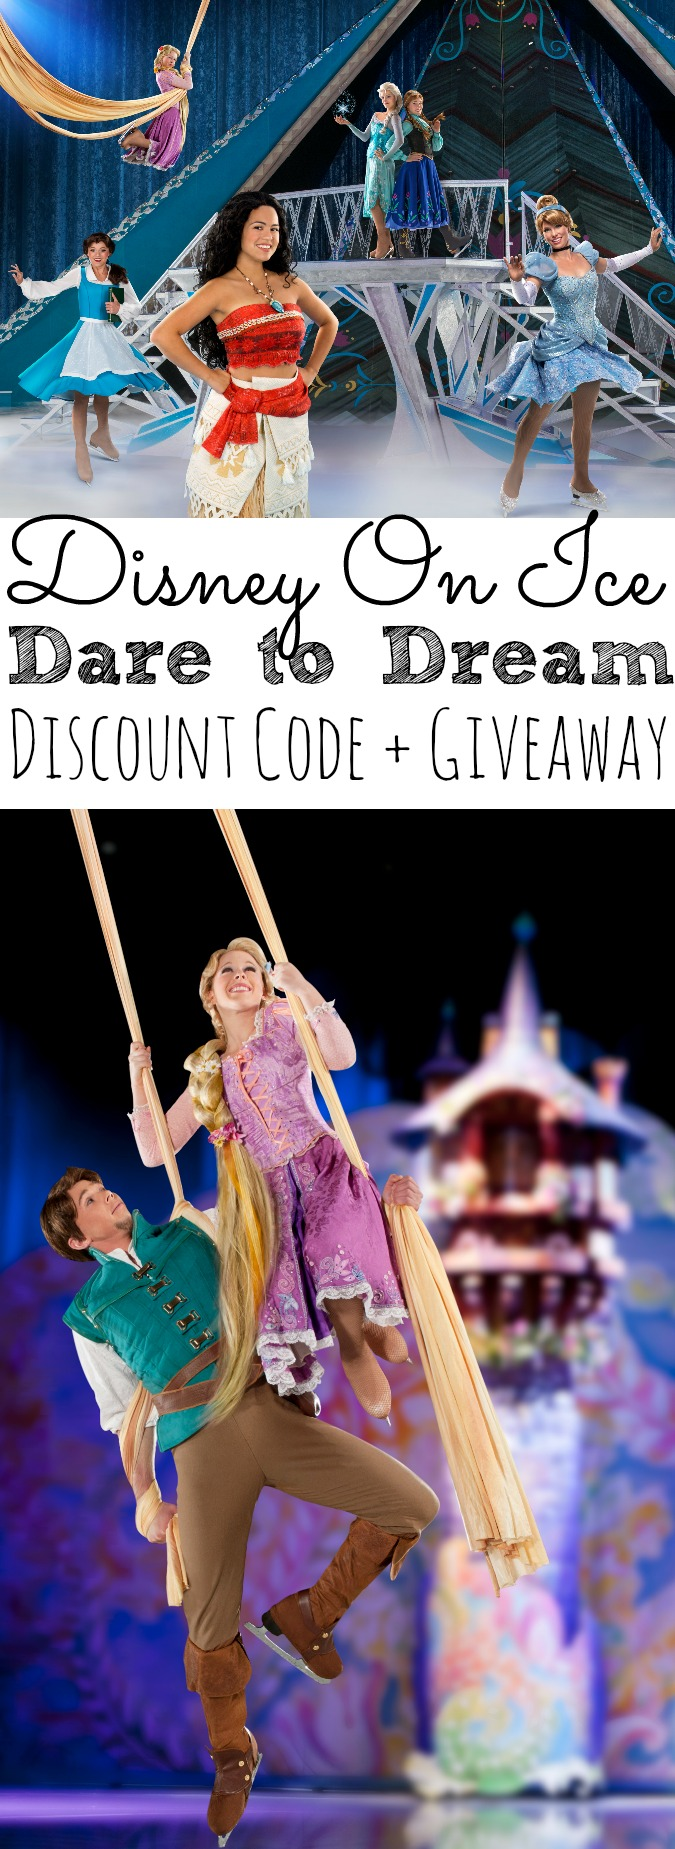 Disney On Ice Dare To Dream Discount Code + Giveaway - simplytodaylife.com